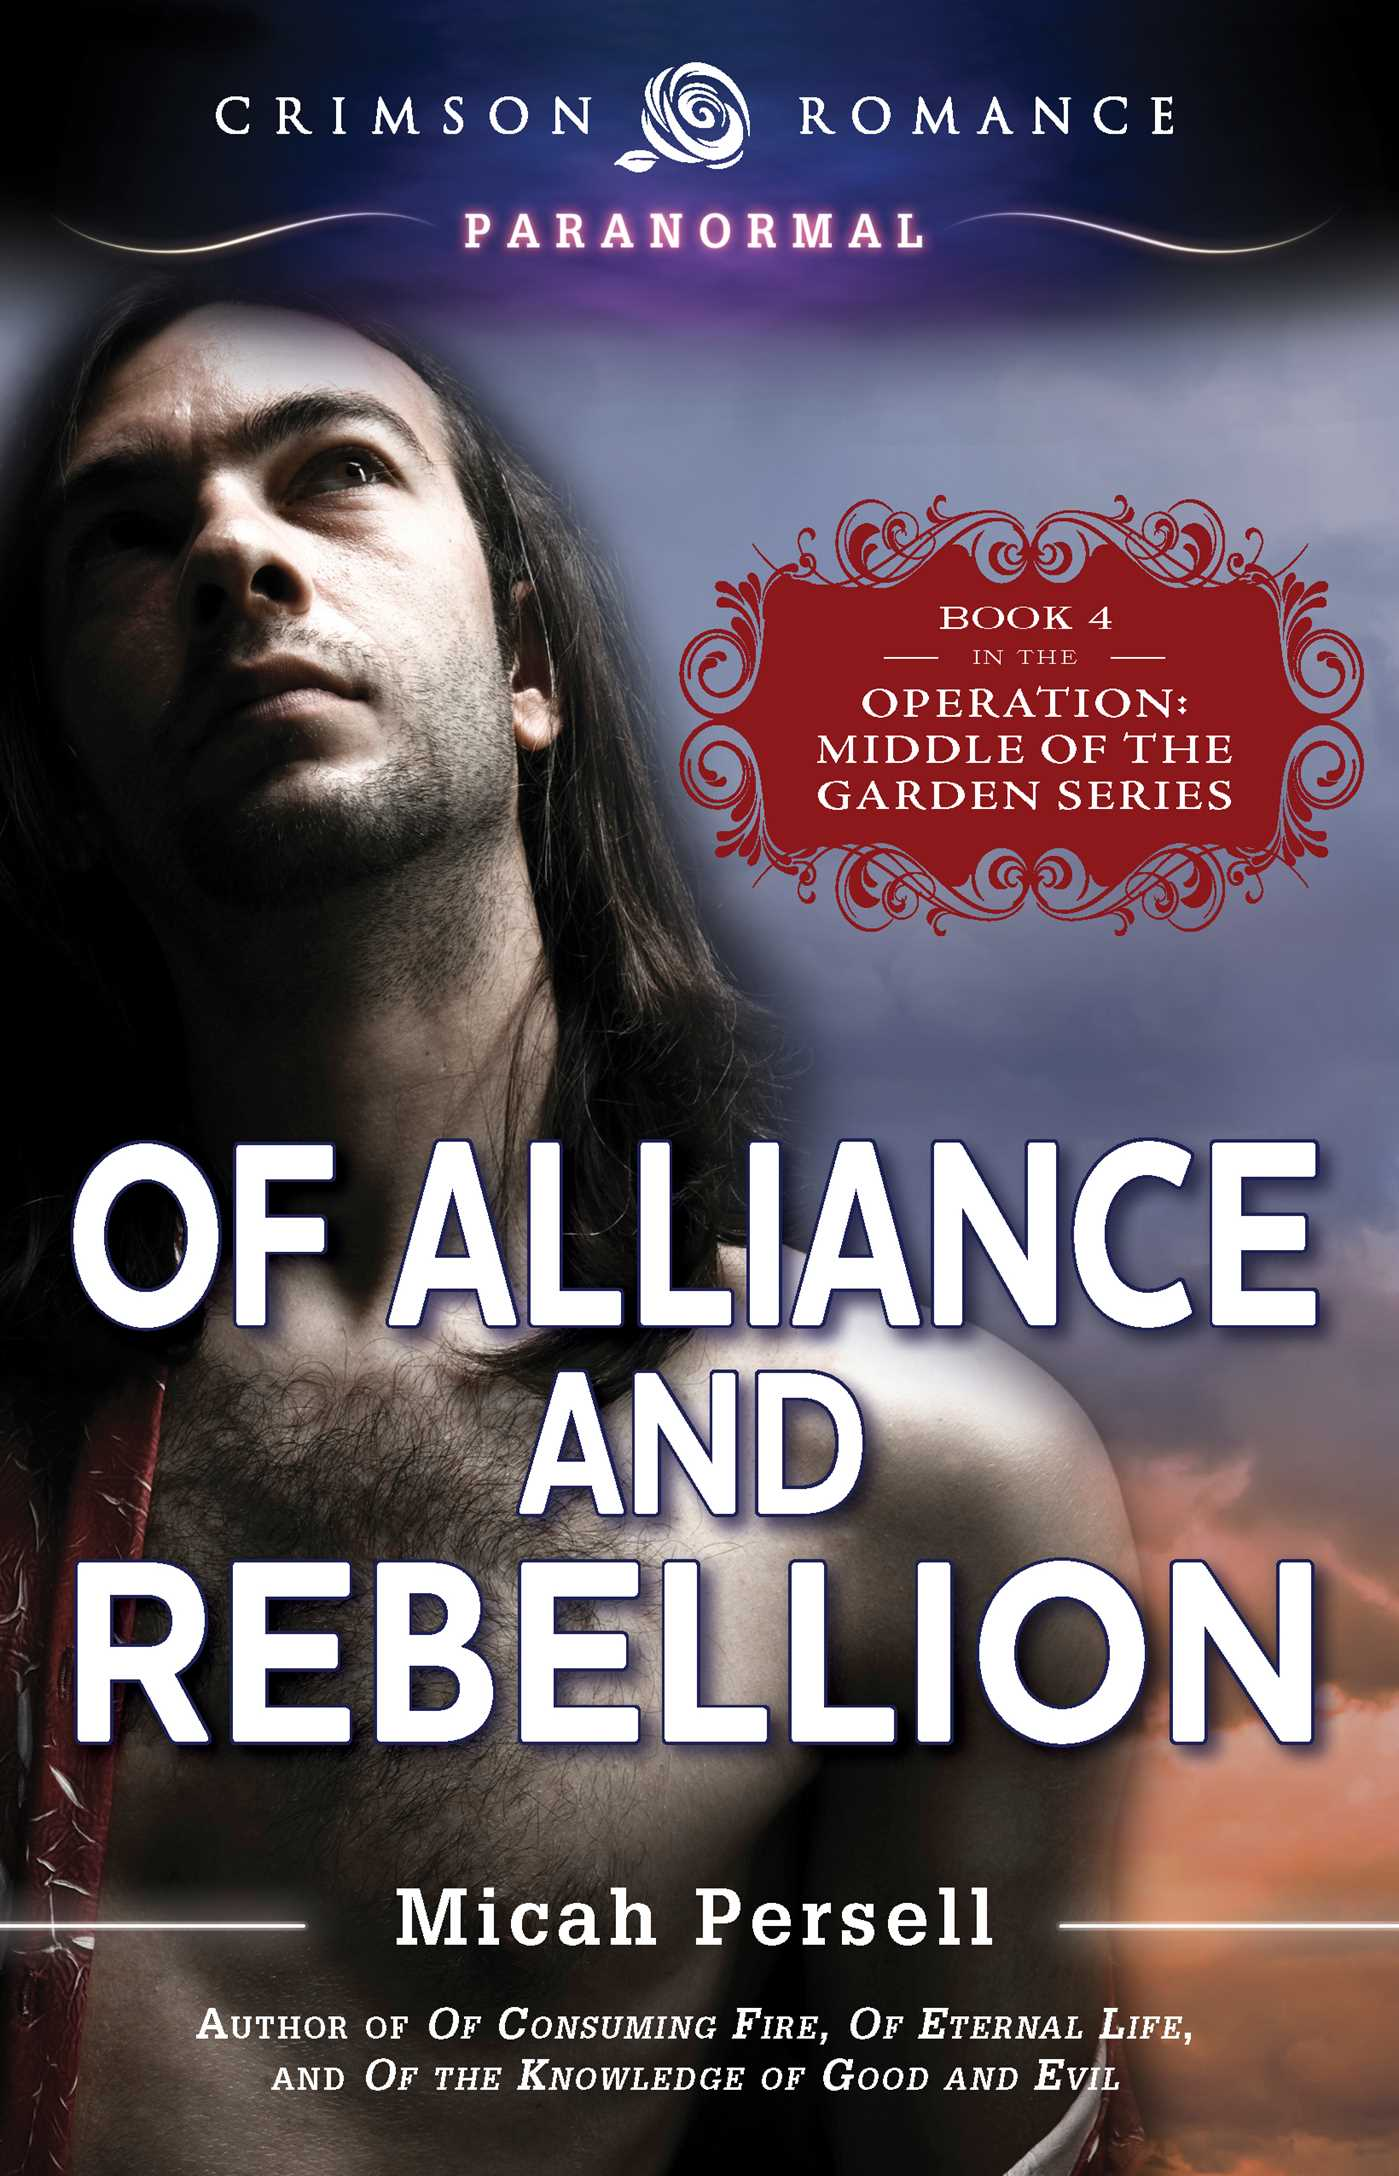 Of alliance and rebellion 9781440588877 hr